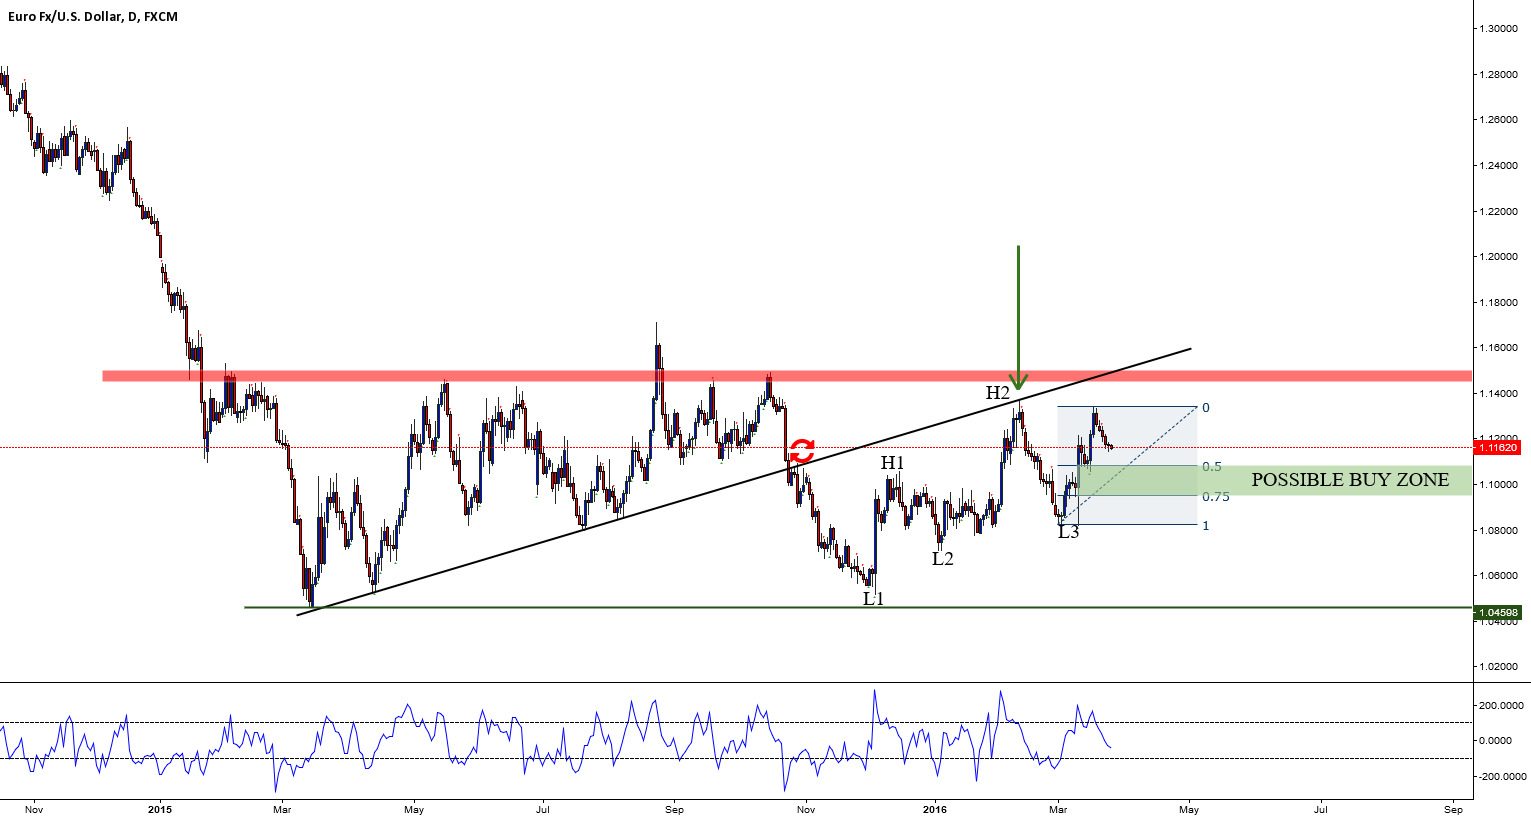 EURUSD: POSSIBLE BUY ZONE THAT WOULD KILL THE 1.145-1.15 CEILING